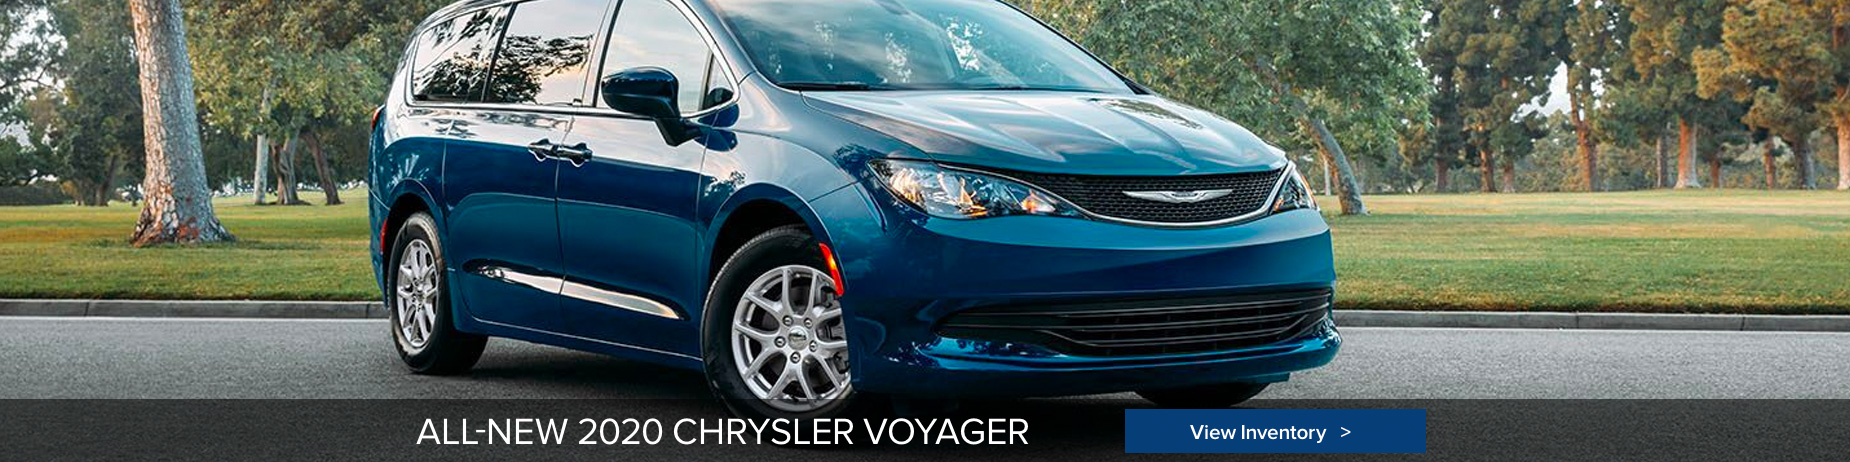 All New 2020 Chrysler Voyager